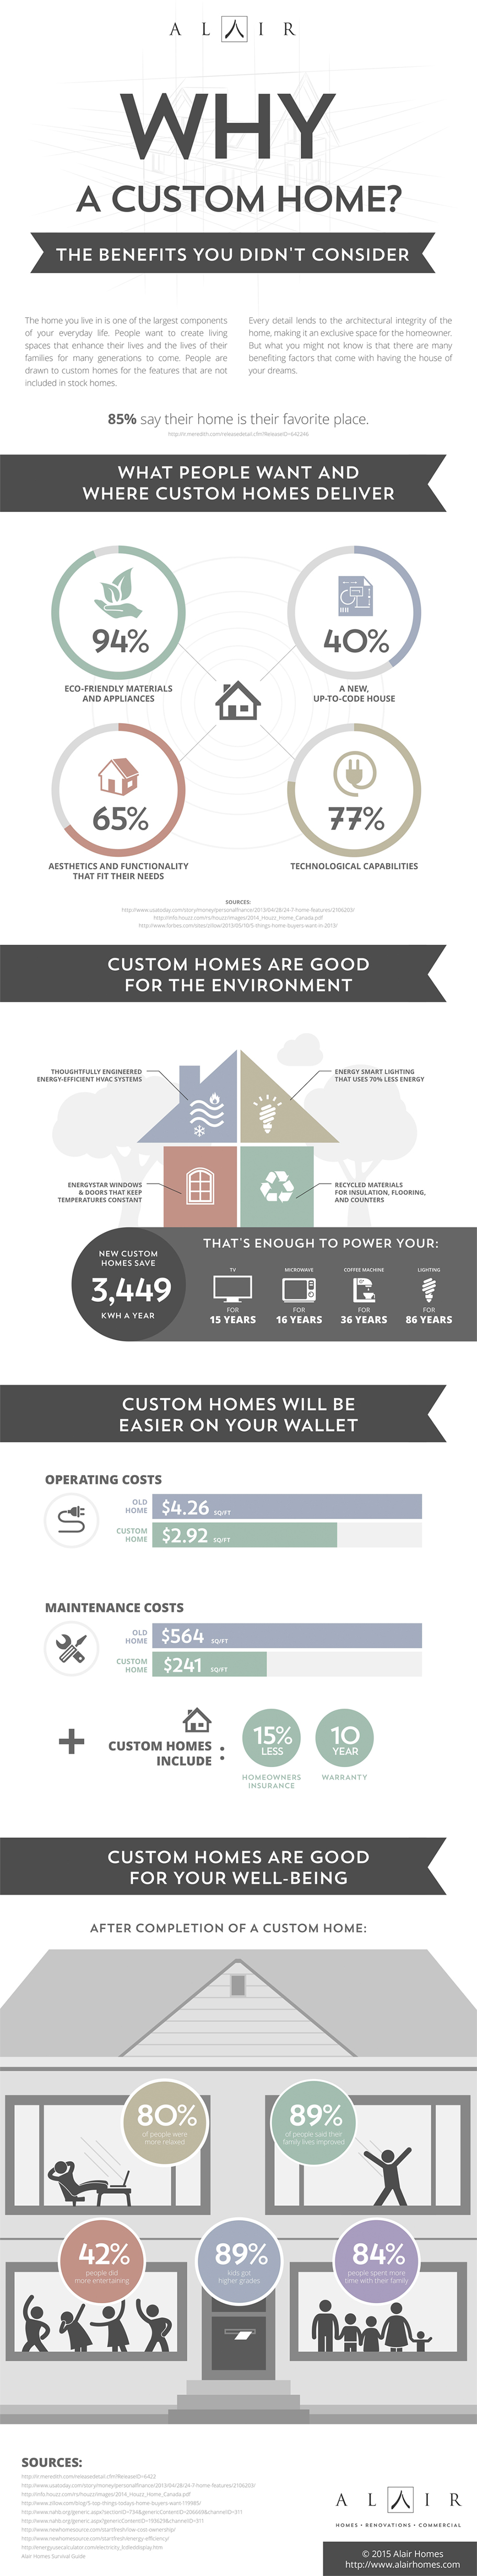 why-build-a-custom-home-infographic-alair